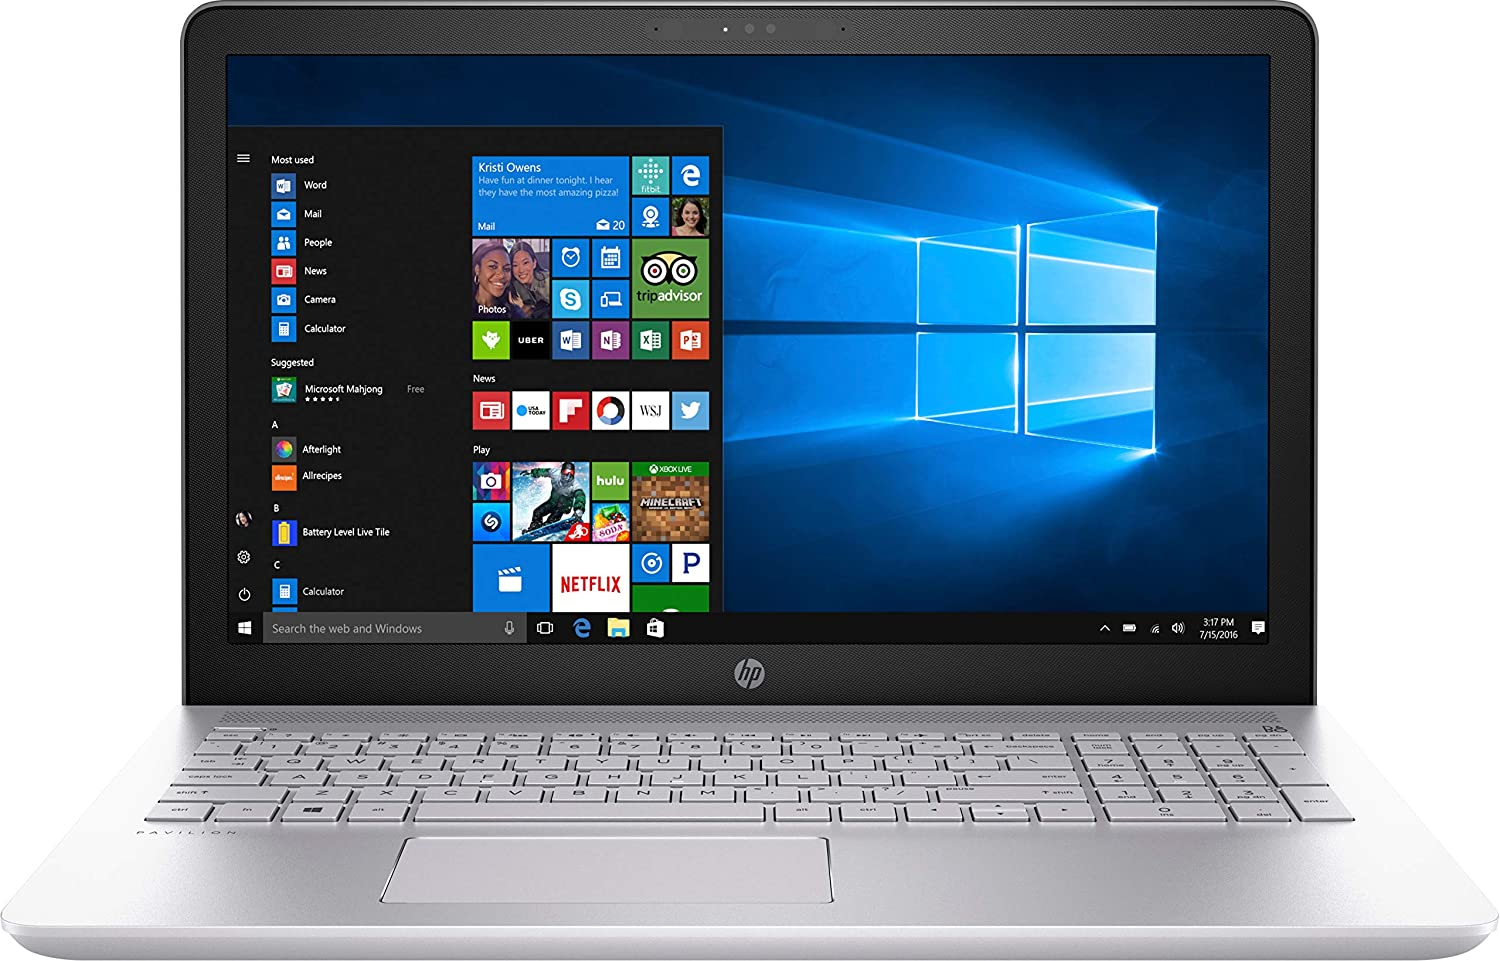 "HP Pavilion 15-cc158nr 15.6"" Laptop Computer - Silver Intel Core i5-8250U Processor 1.6GHz; Microsoft Windows 10 Home; 8GB DDR4 SDRAM; 256GB Solid State Drive"